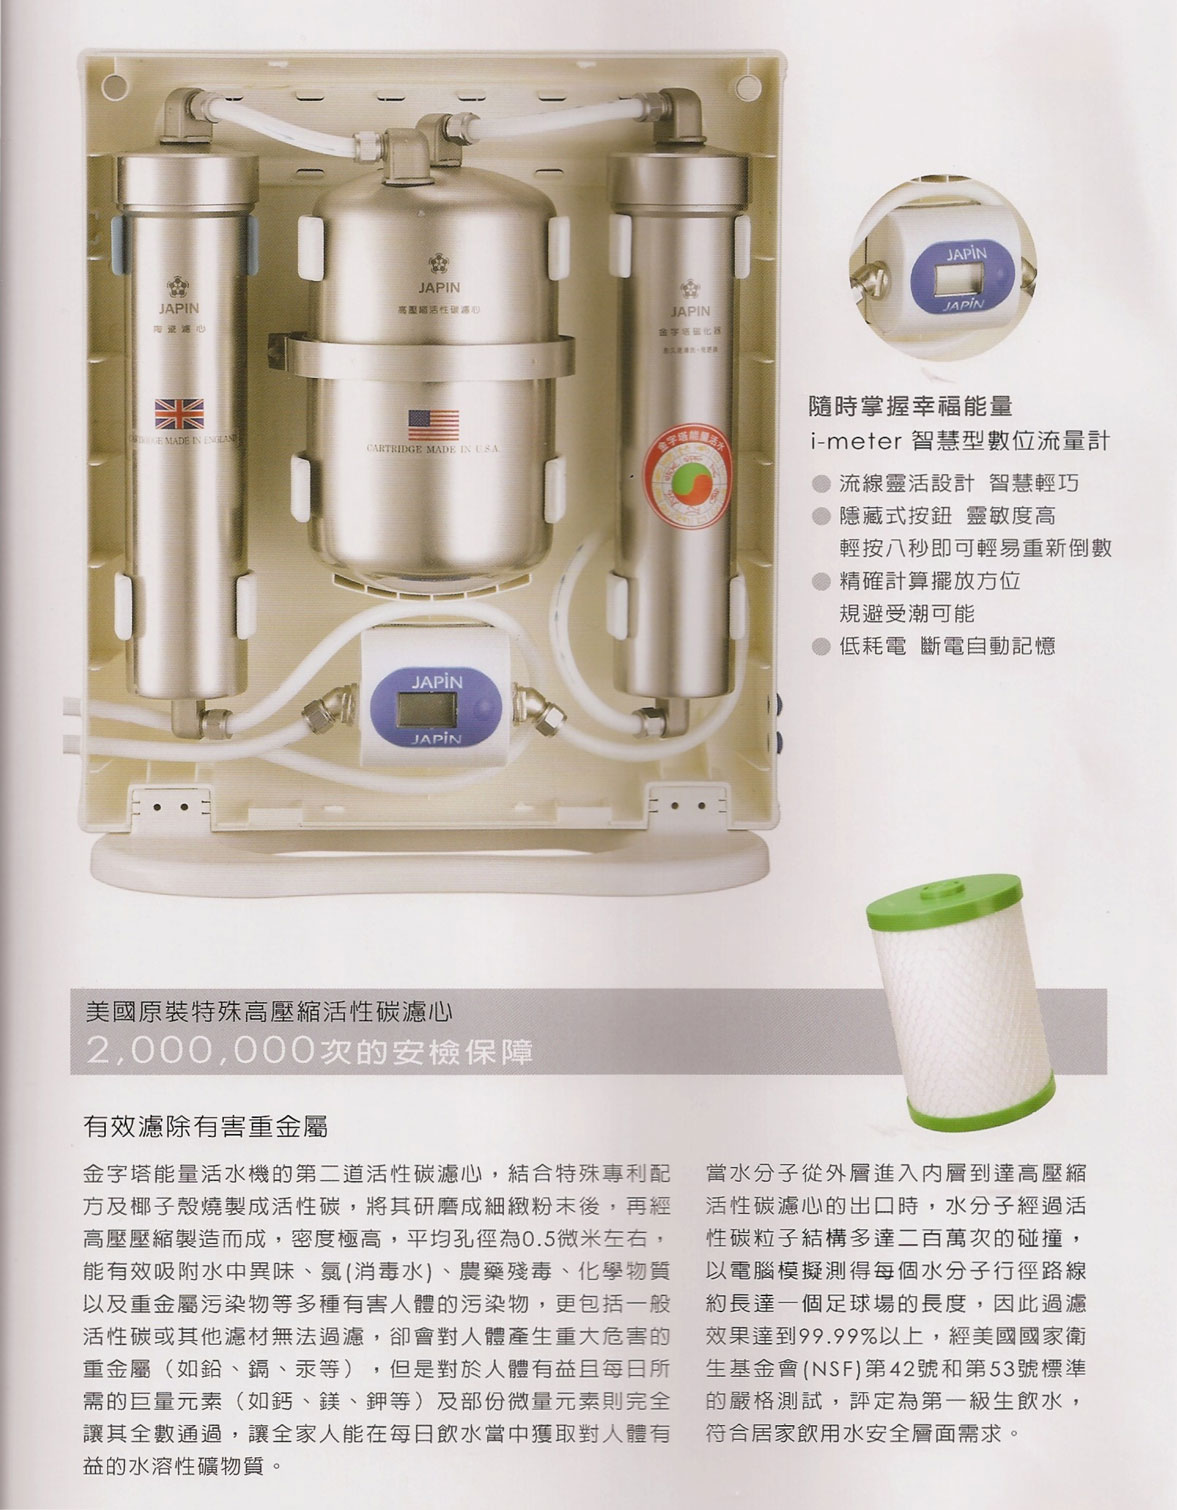 iWater_Brochure-_chinese-4